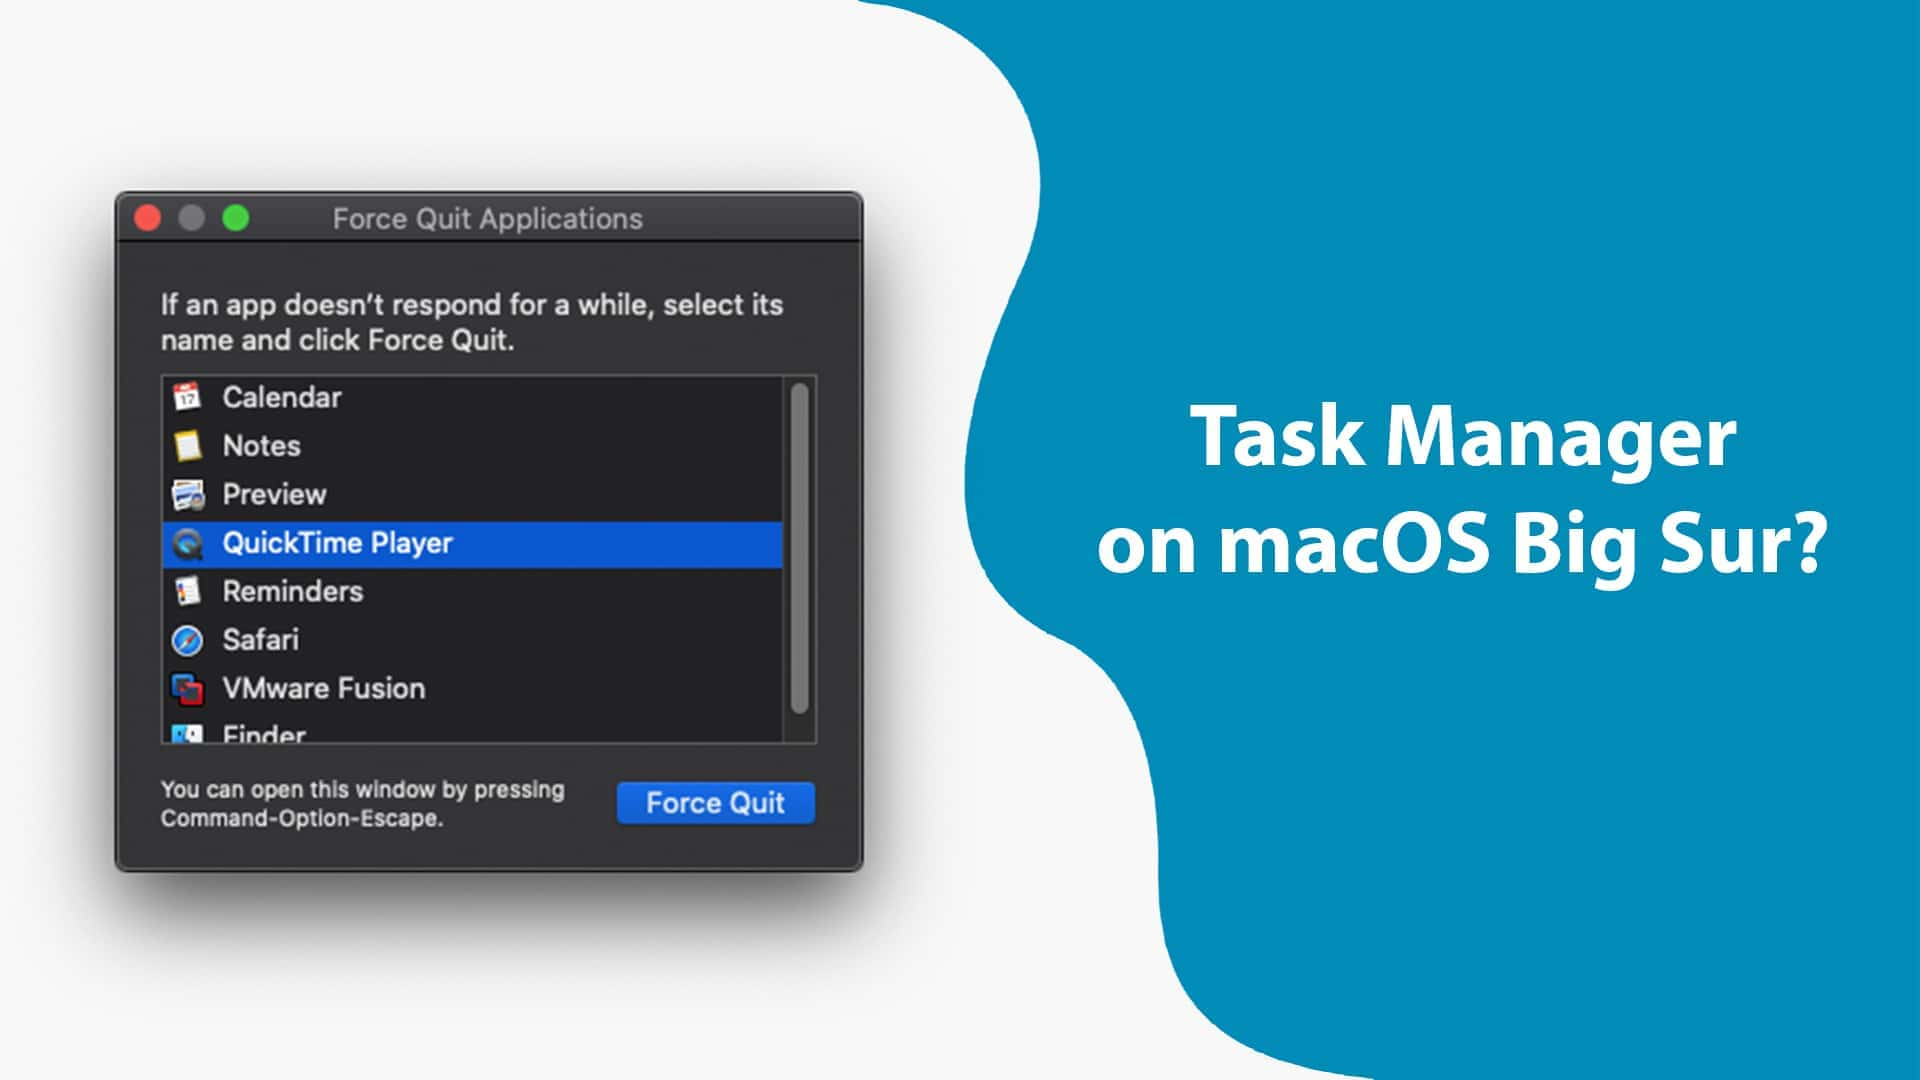 How to Open Task Manager and Force Quit on macOS Big Sur